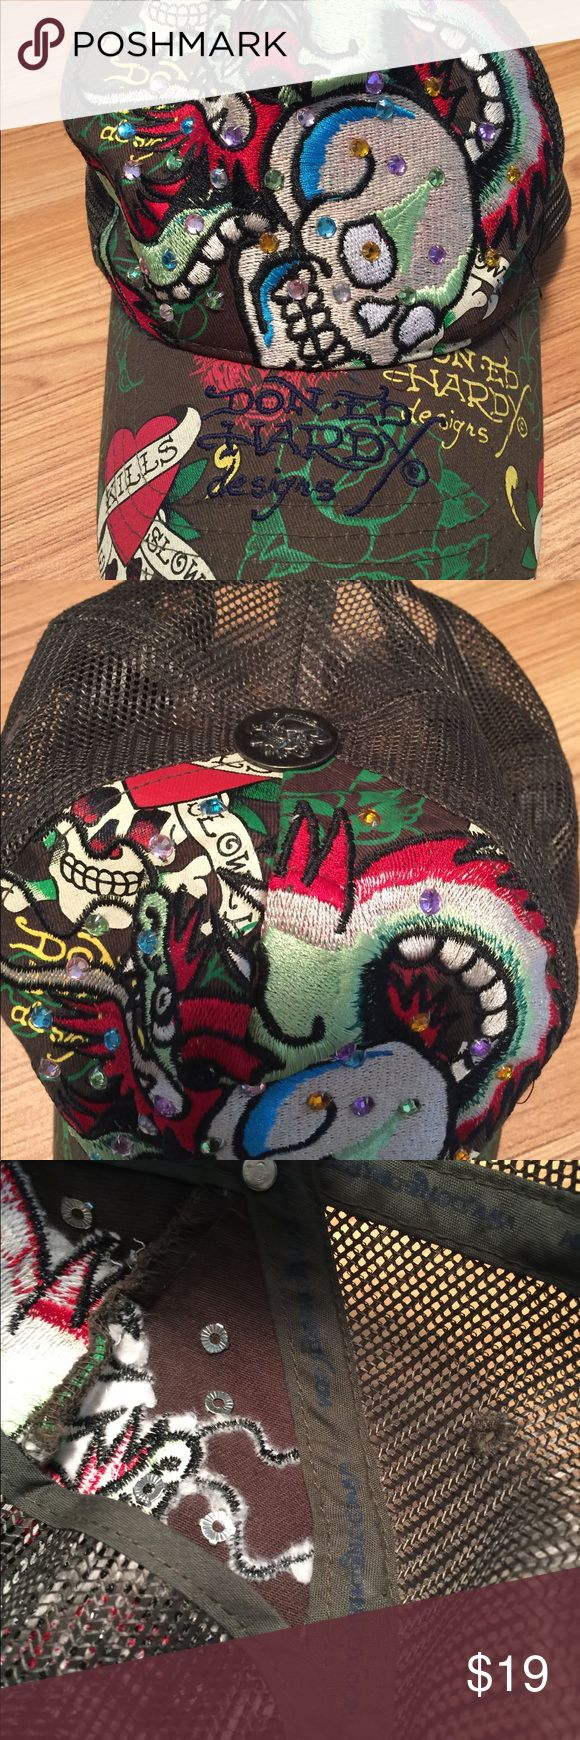 Don Ed Hardy designs adjust cap with skulls/snakes Don Ed Hardy designs adjustable baseball style hat with skulls and snakes - perfect Don Ed Hardy Designs Accessories Hats